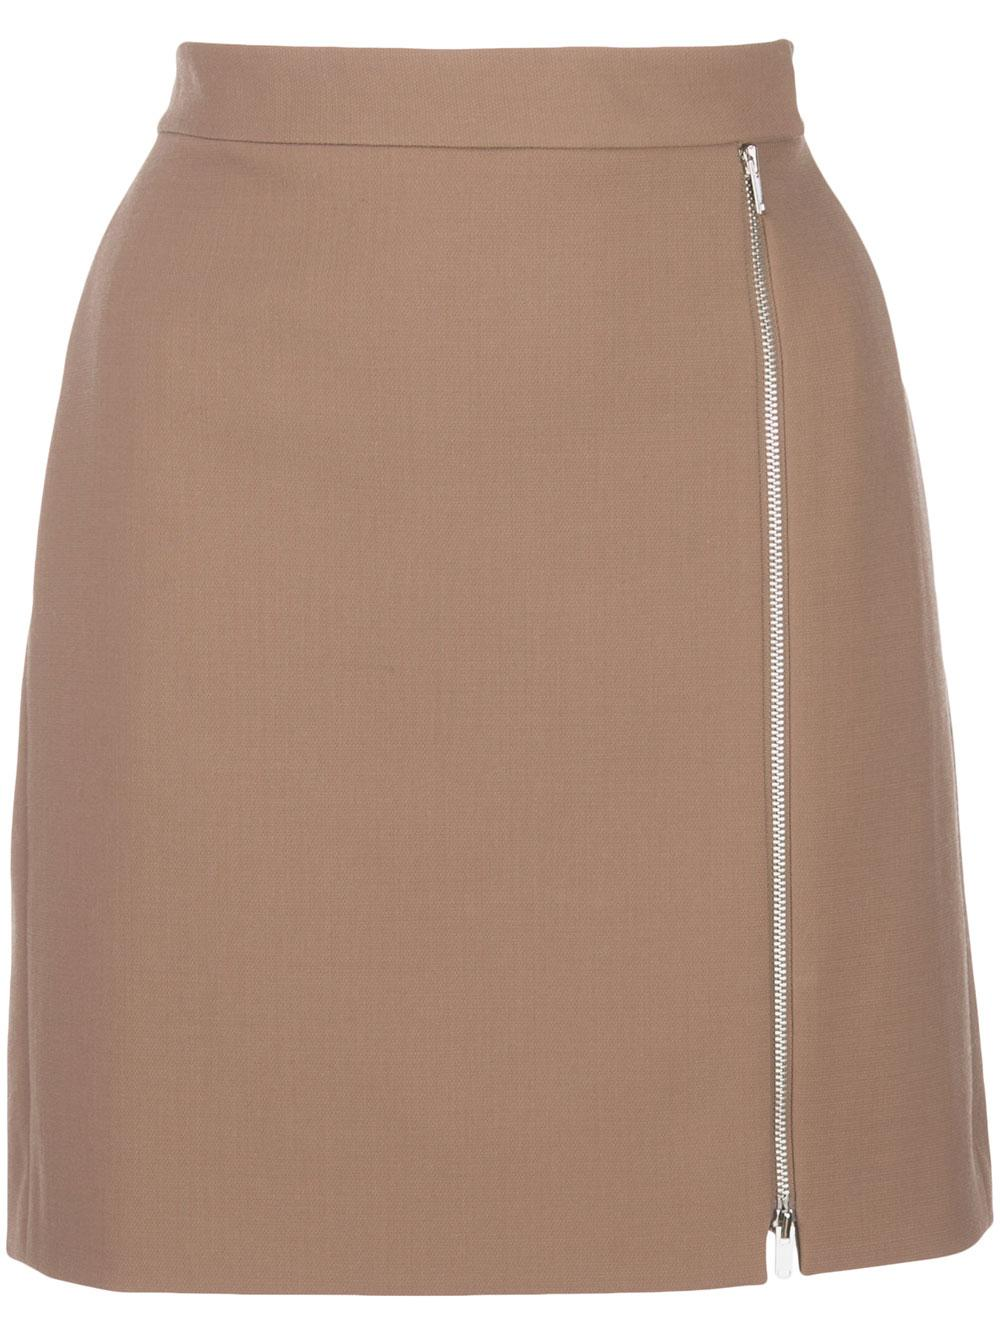 Zip Mini Skirt